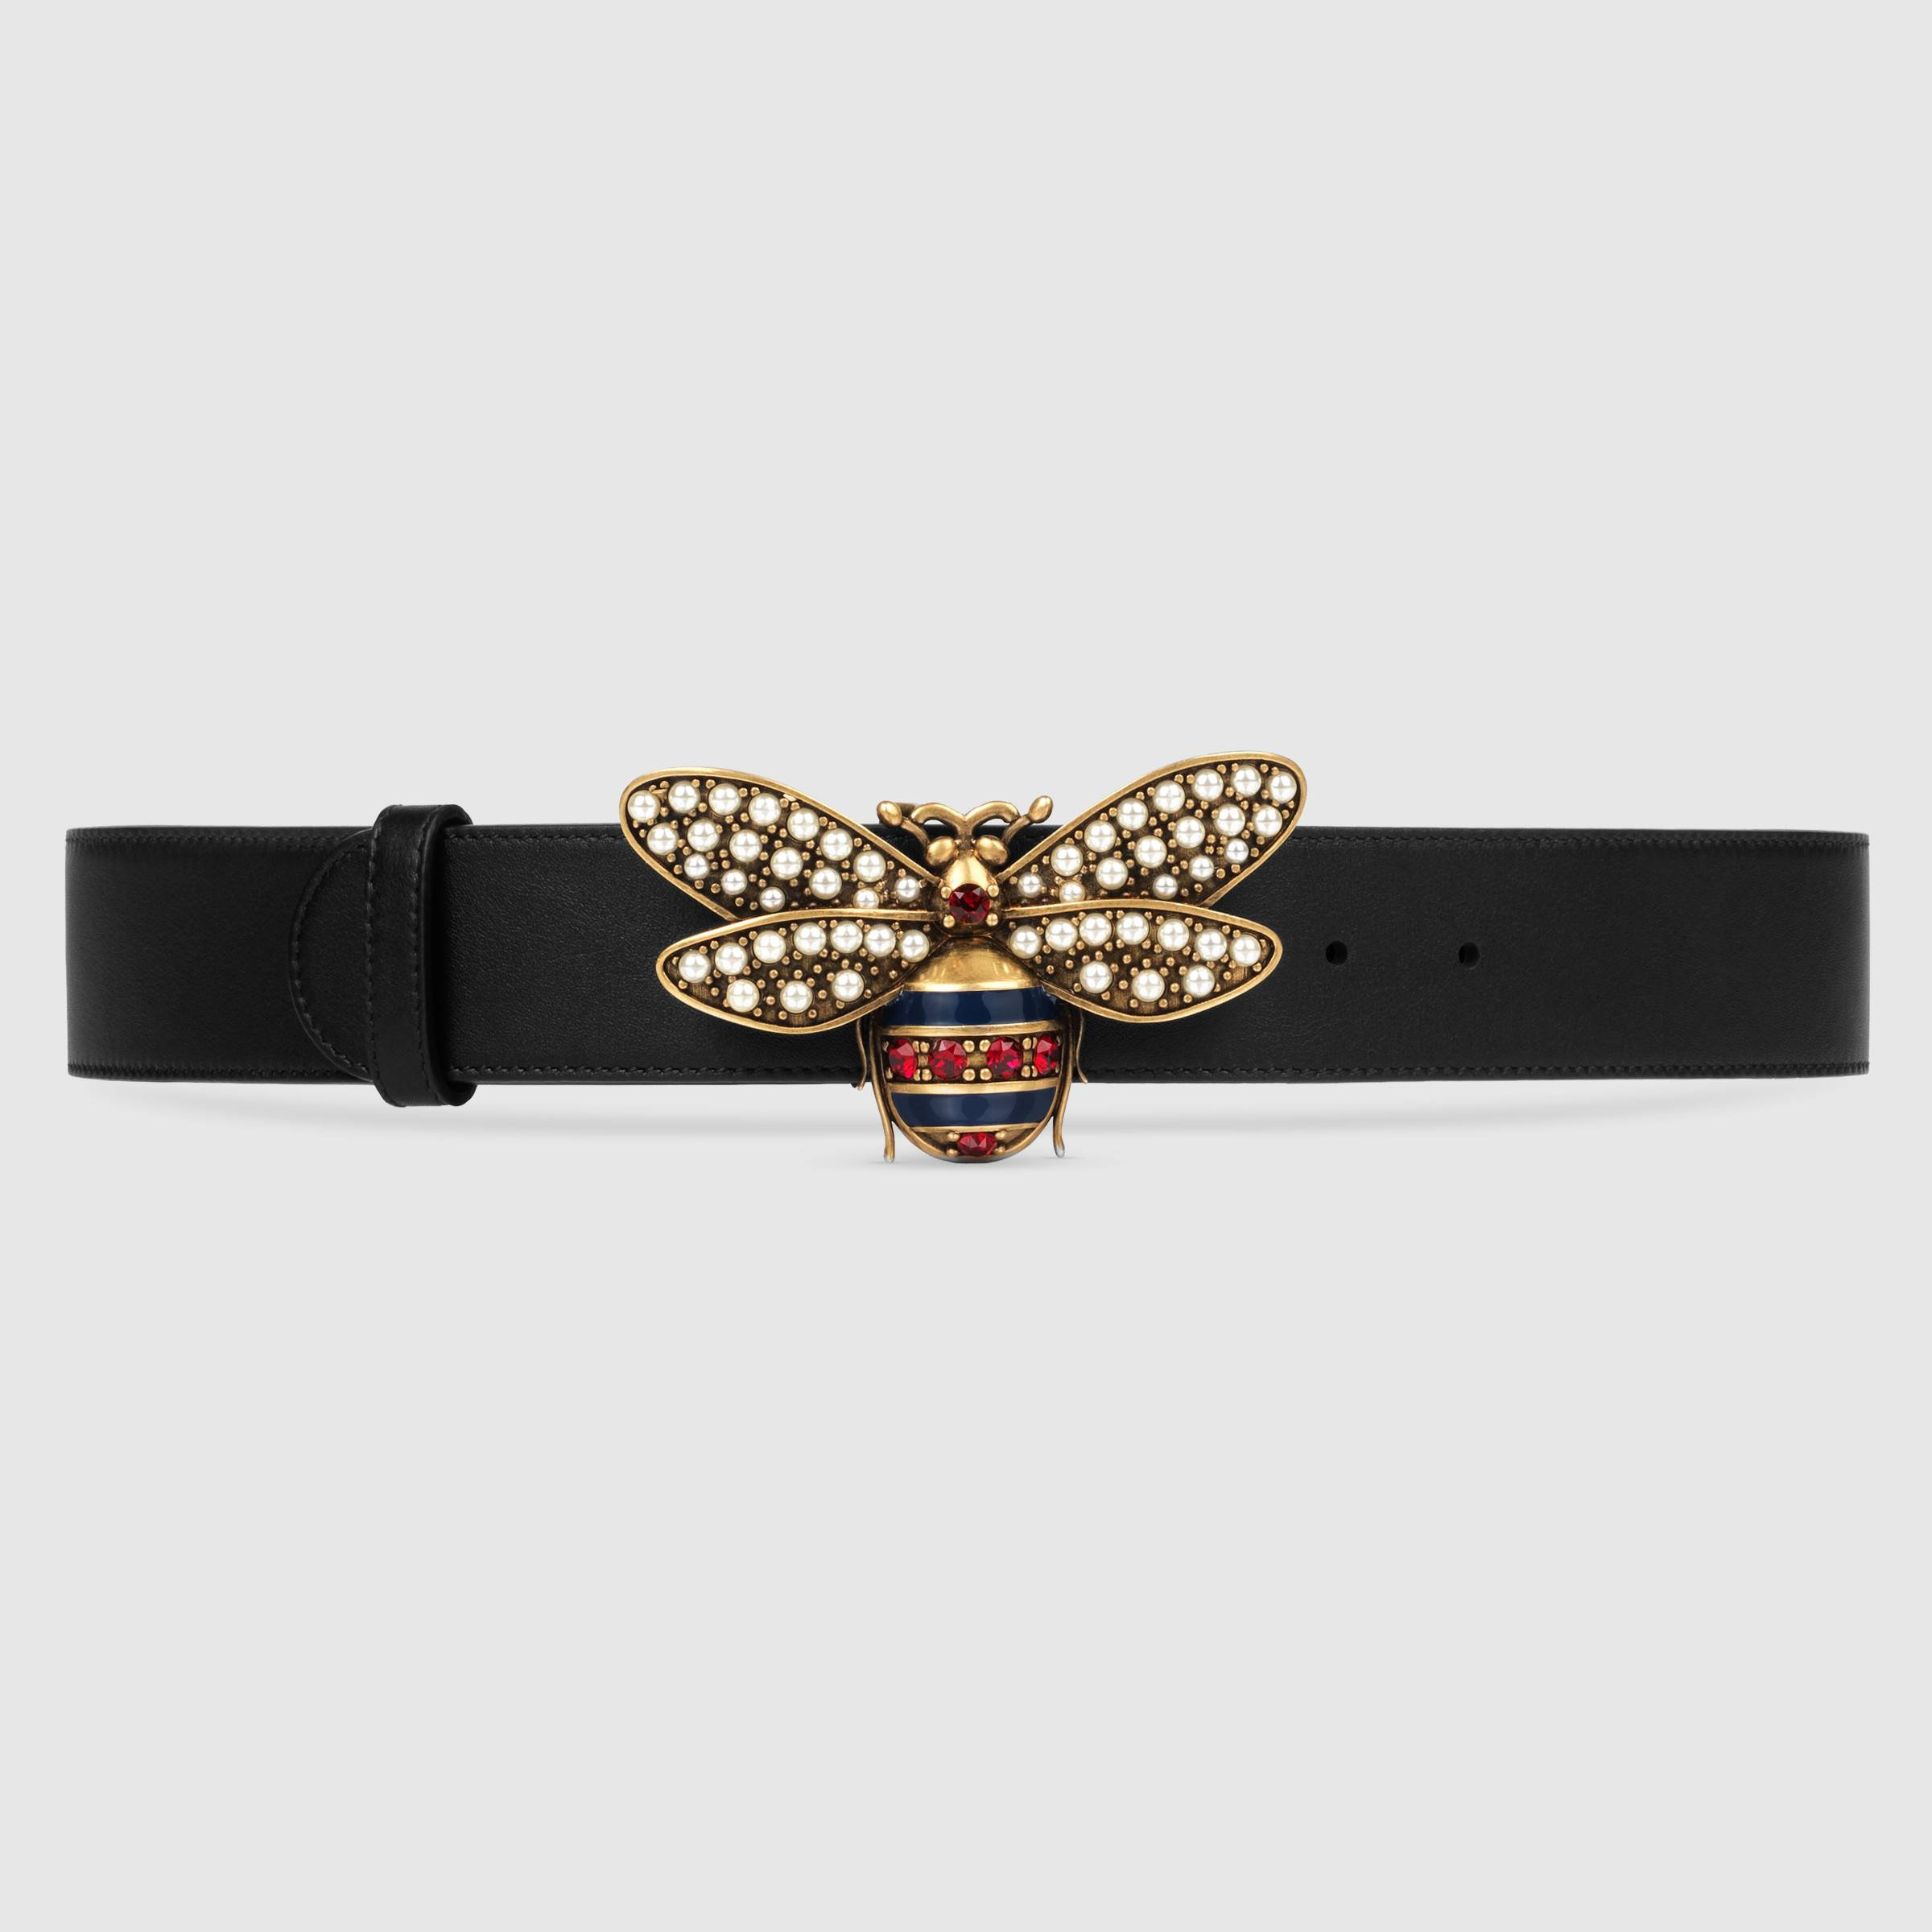 b065cc15b GUCCI Queen Margaret Bee Belt Collection In Black Leather | So In Miami